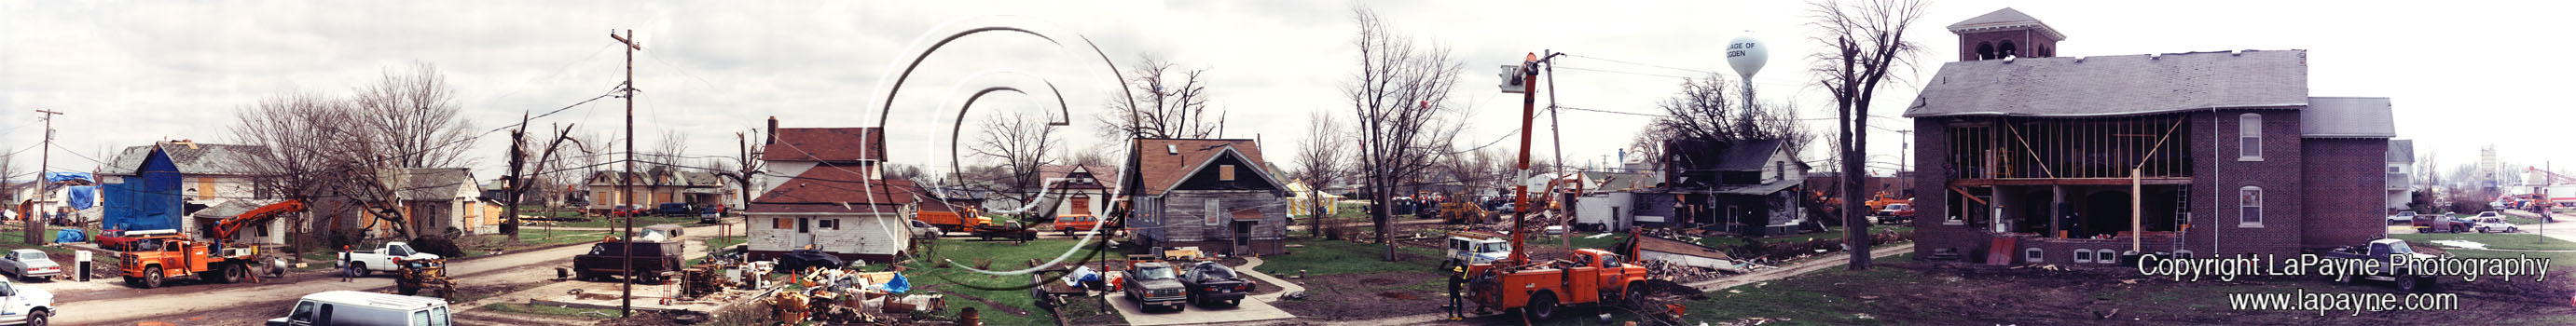 Ogden Illinois Tornado Aftermath